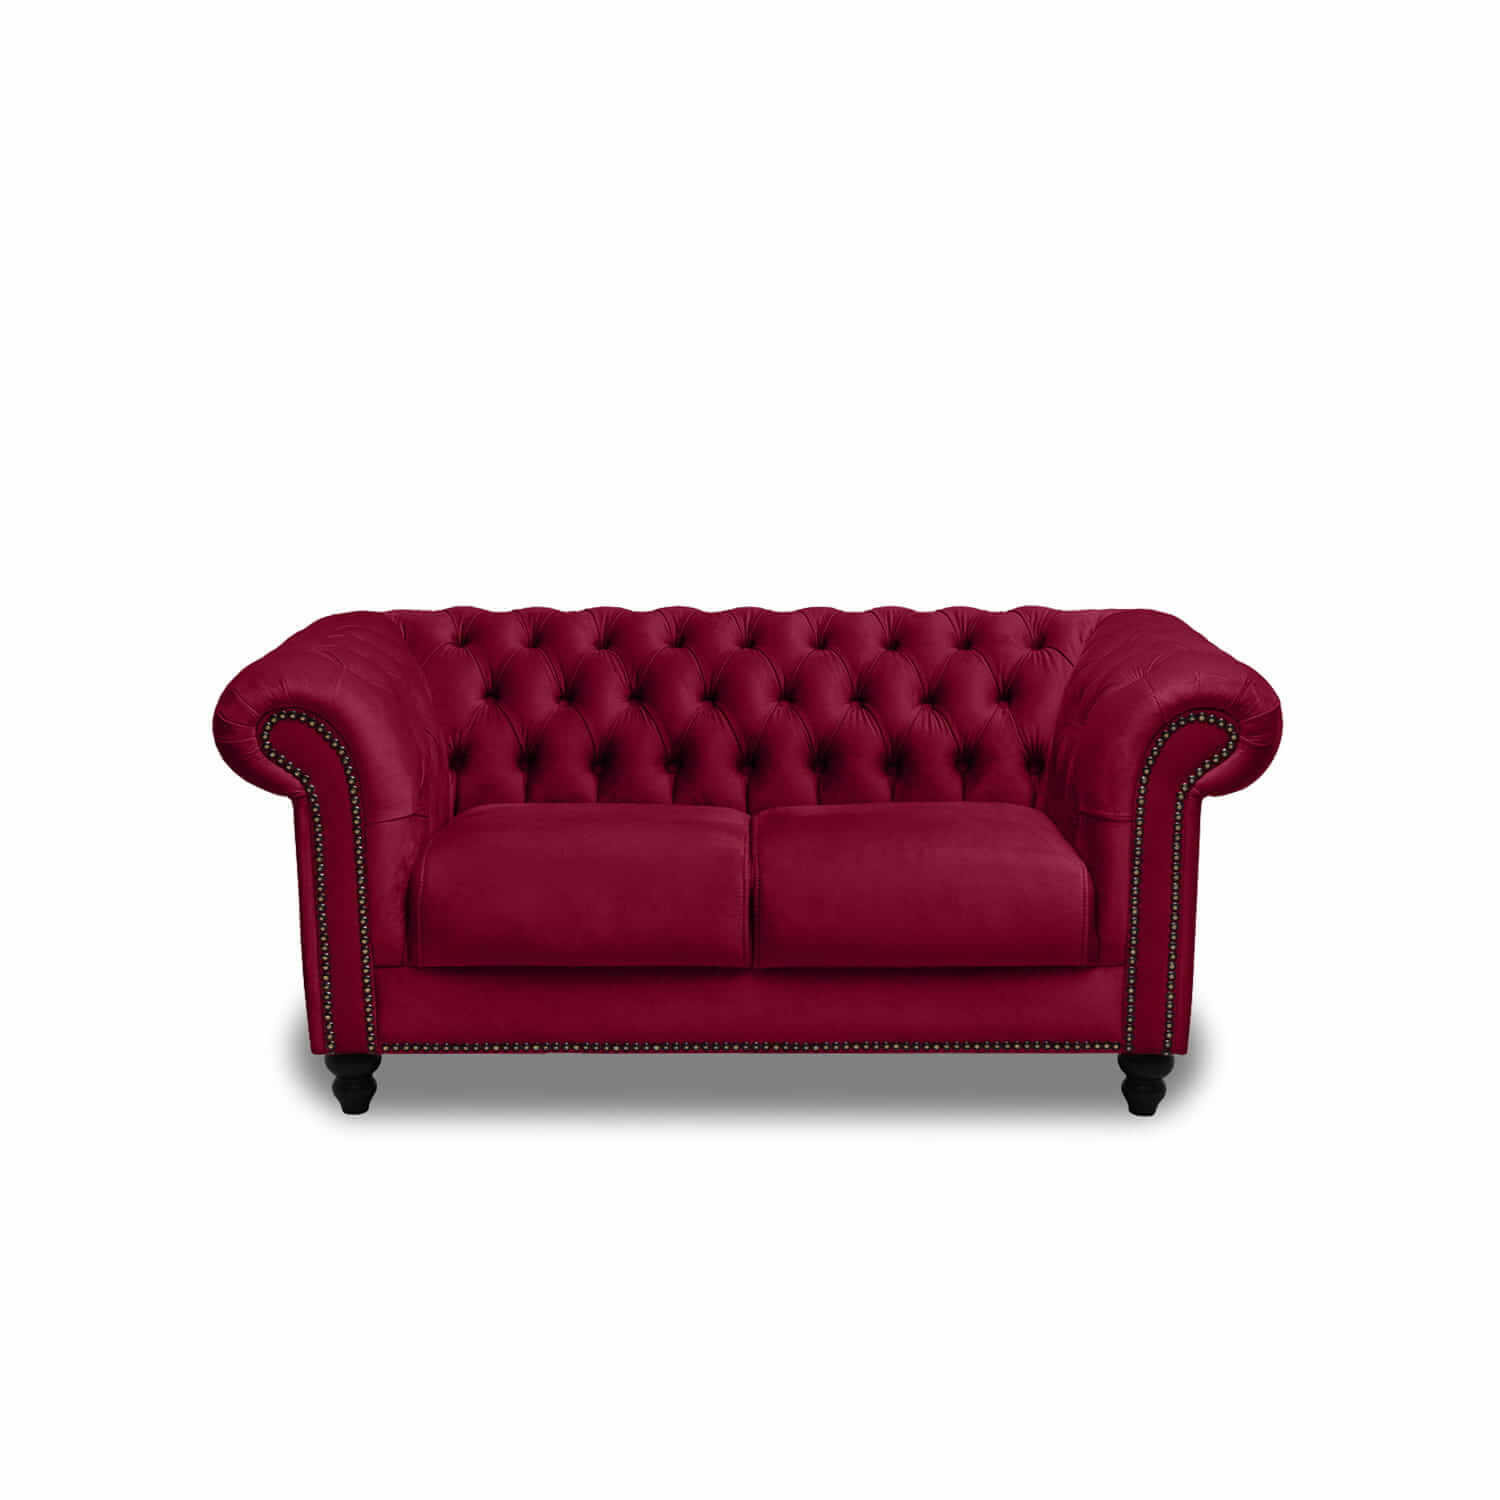 https://www.excluzive.se/wp-content/uploads/2020/10/Chesterfield-2-sits-Vinrod.jpg